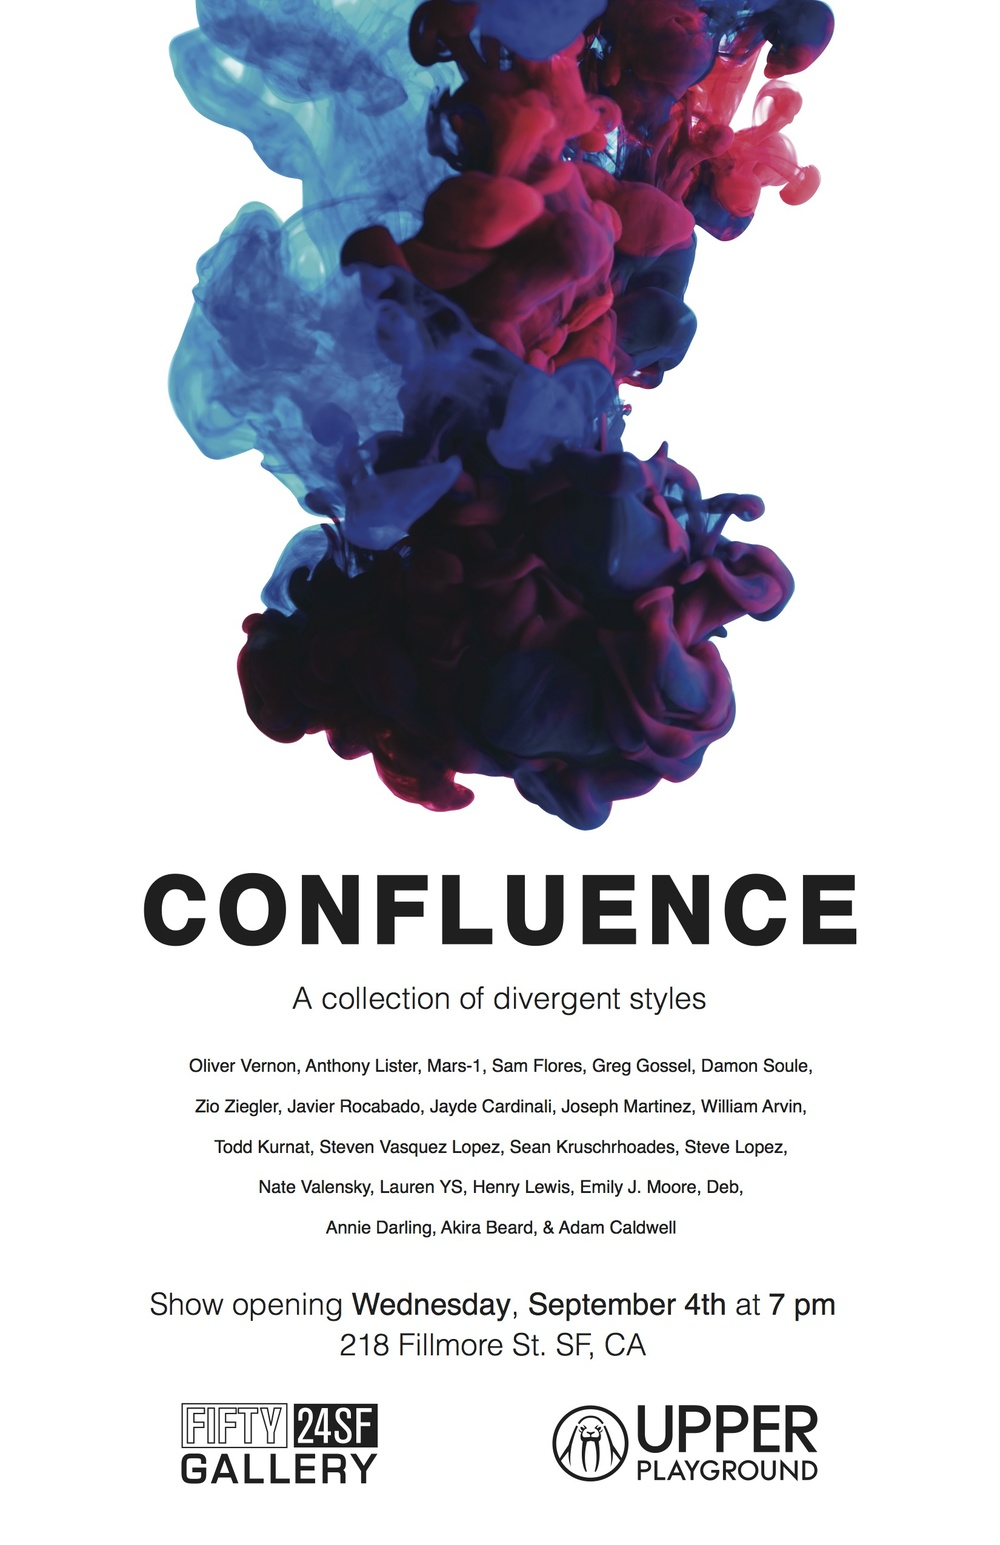 CONFLUENCE - FIFTY24SF GROUP SHOW